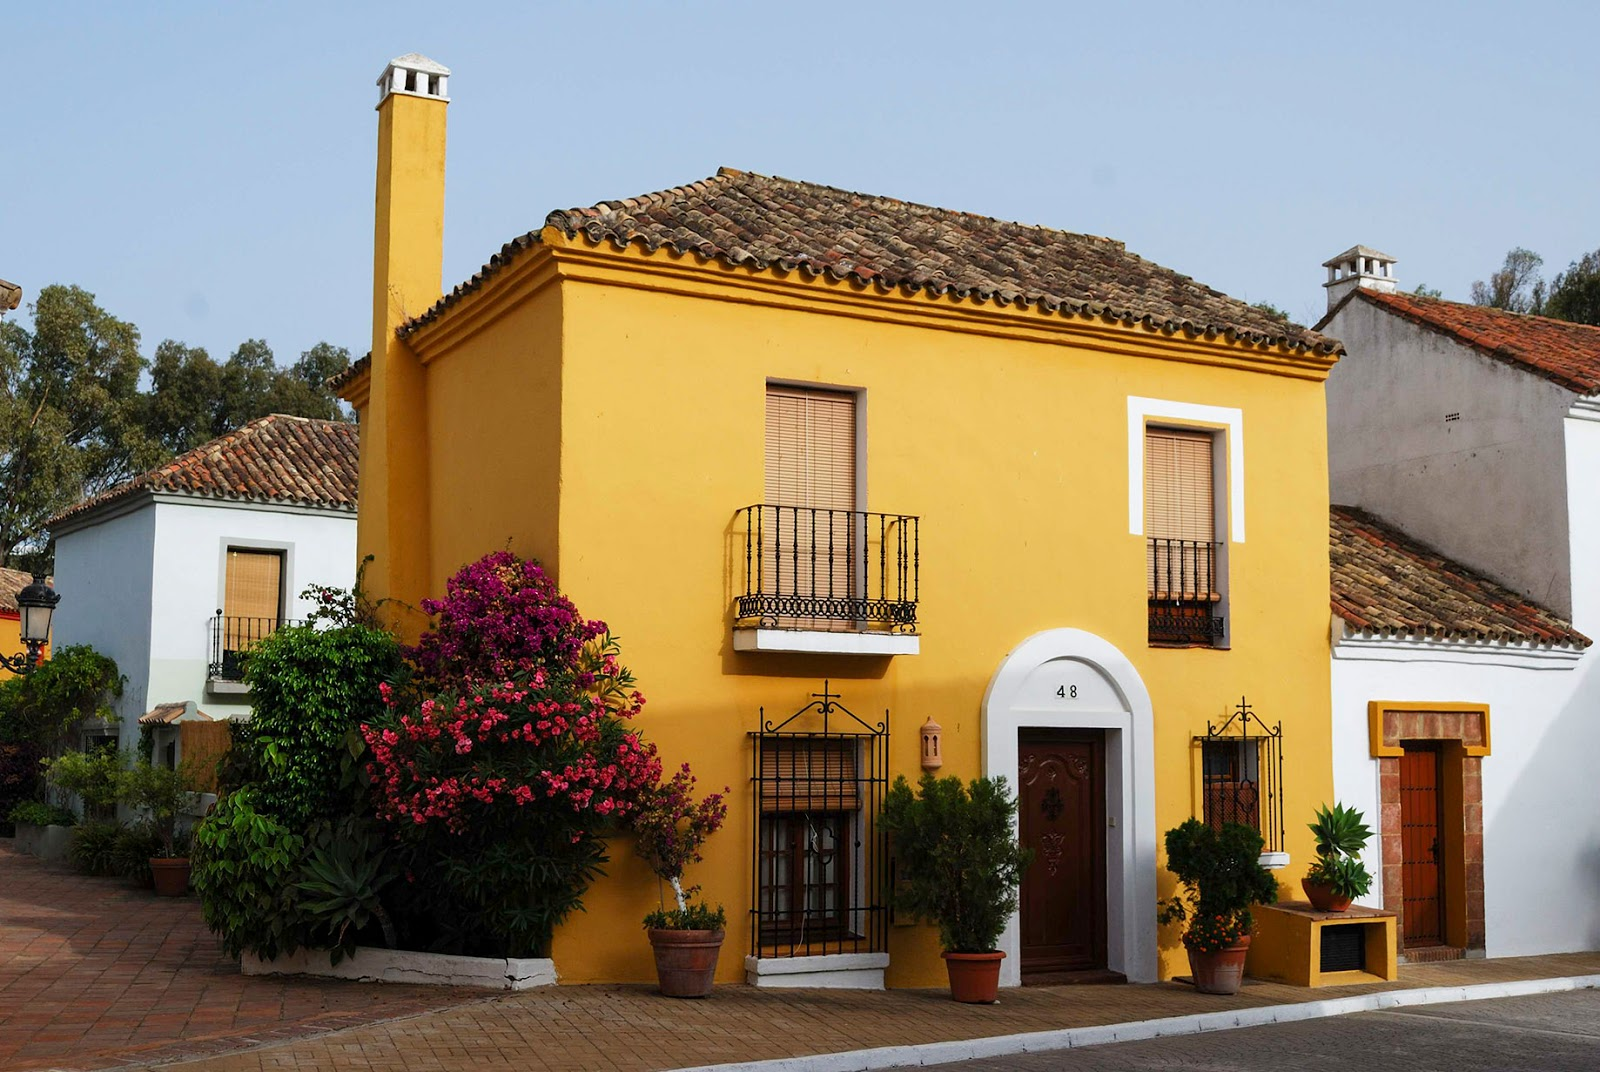 beautiful pretty village small town spain old southern andalusia beach guadalmina marbella malaga